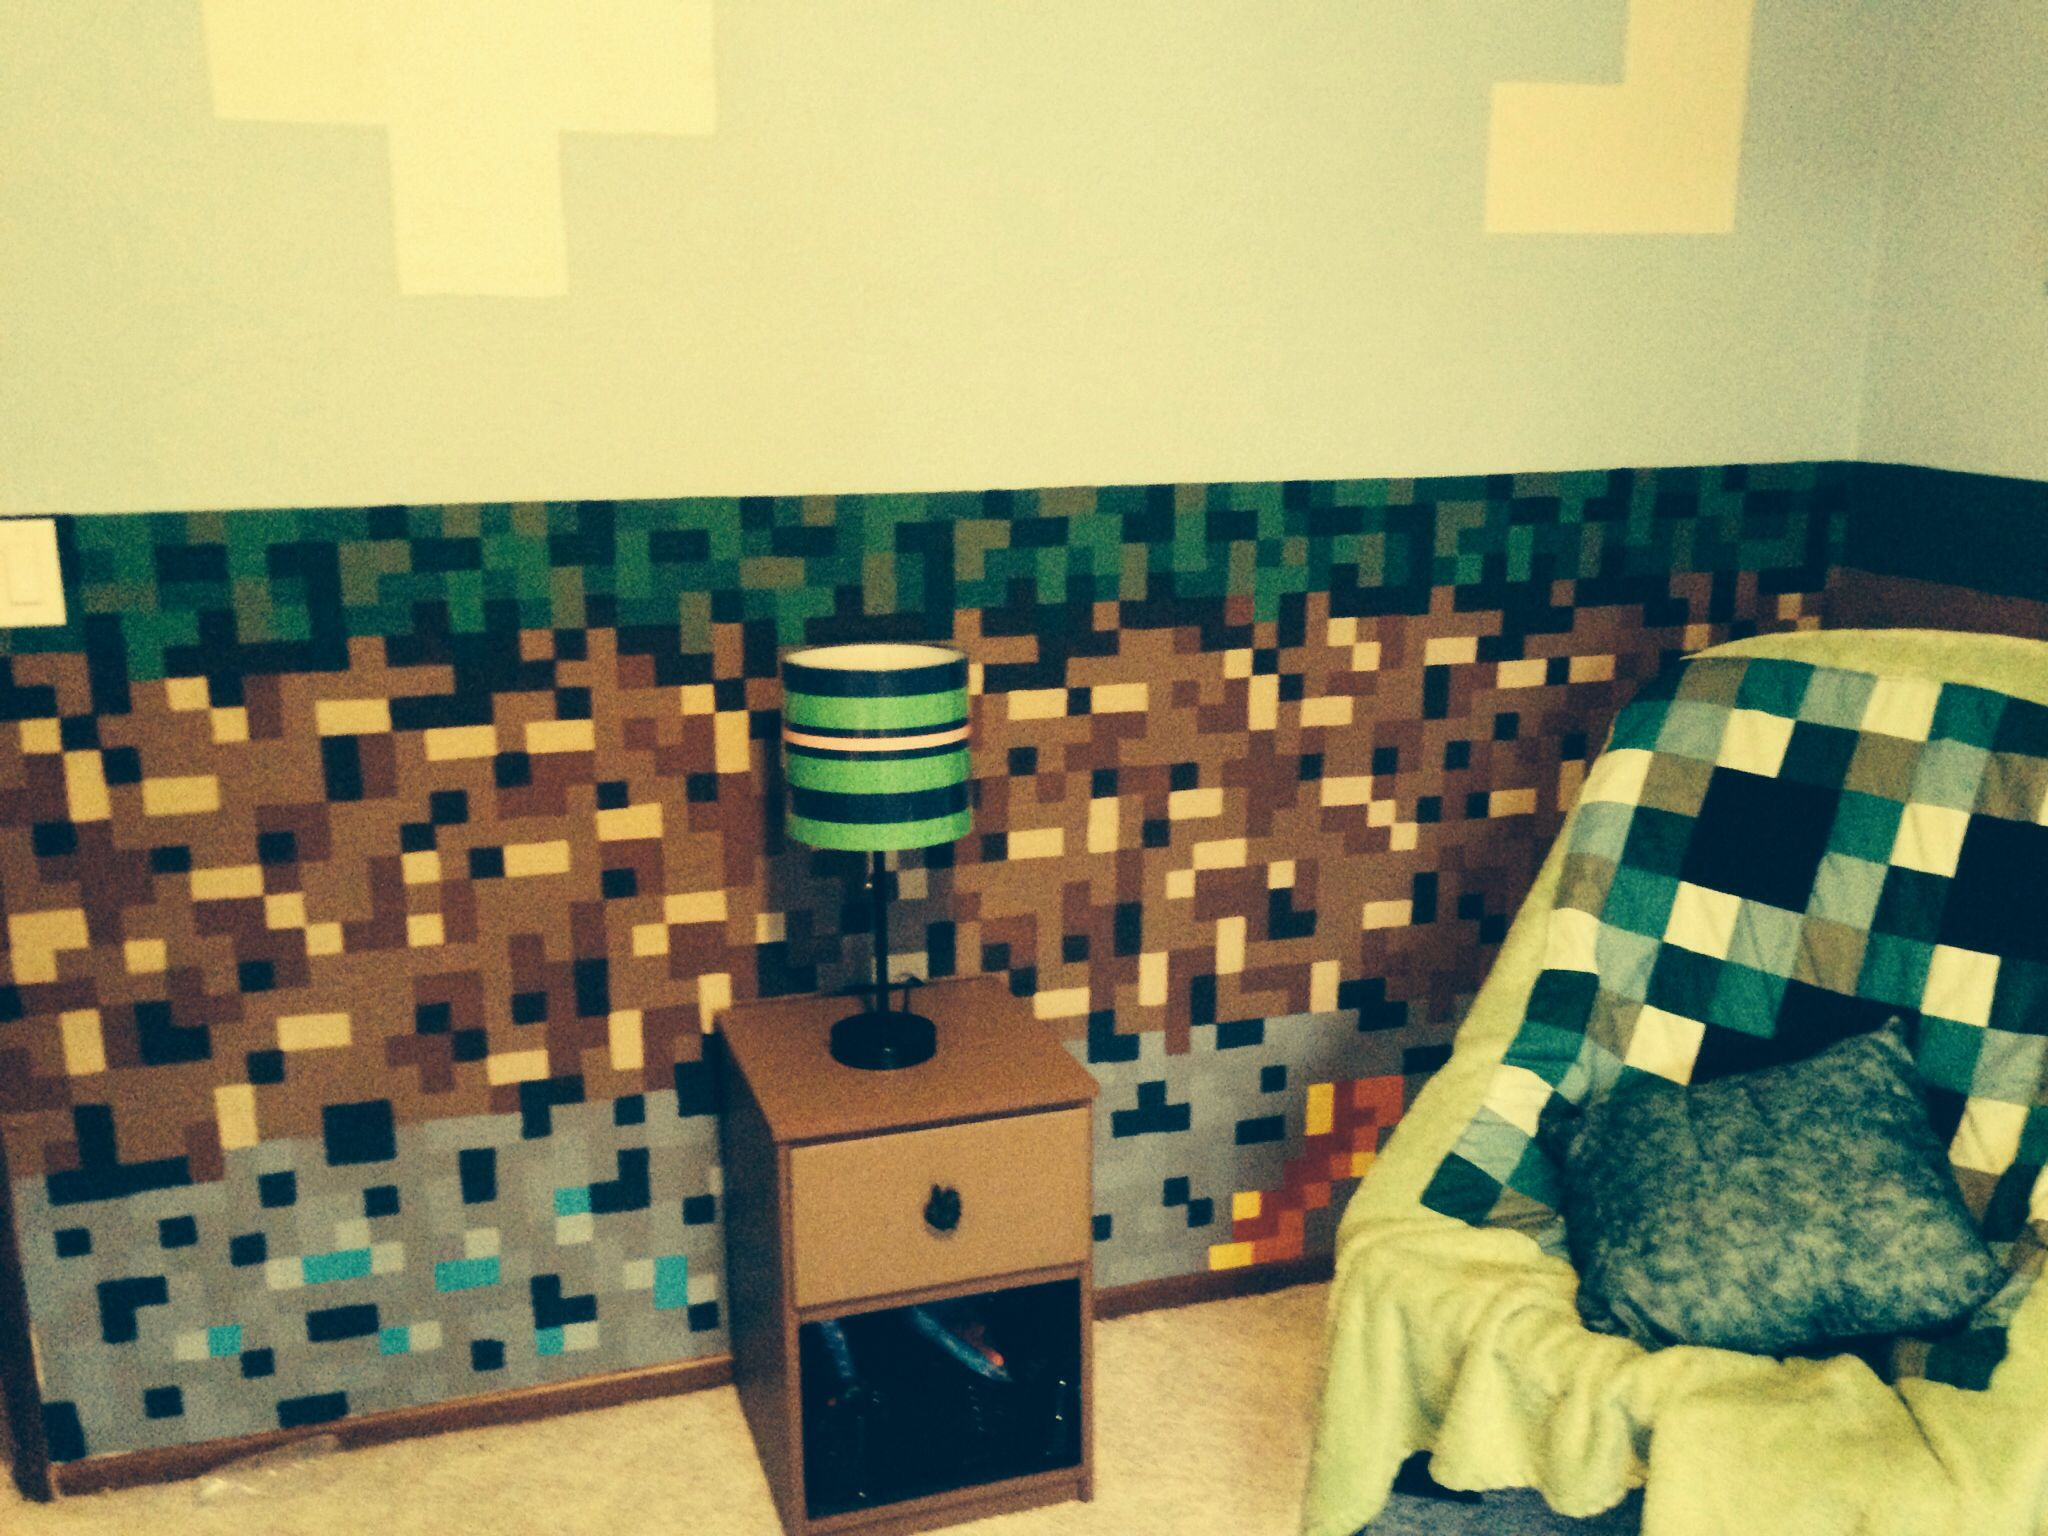 Minecraft Bedroom For My 9 Year Old Son Minecraft Pinterest